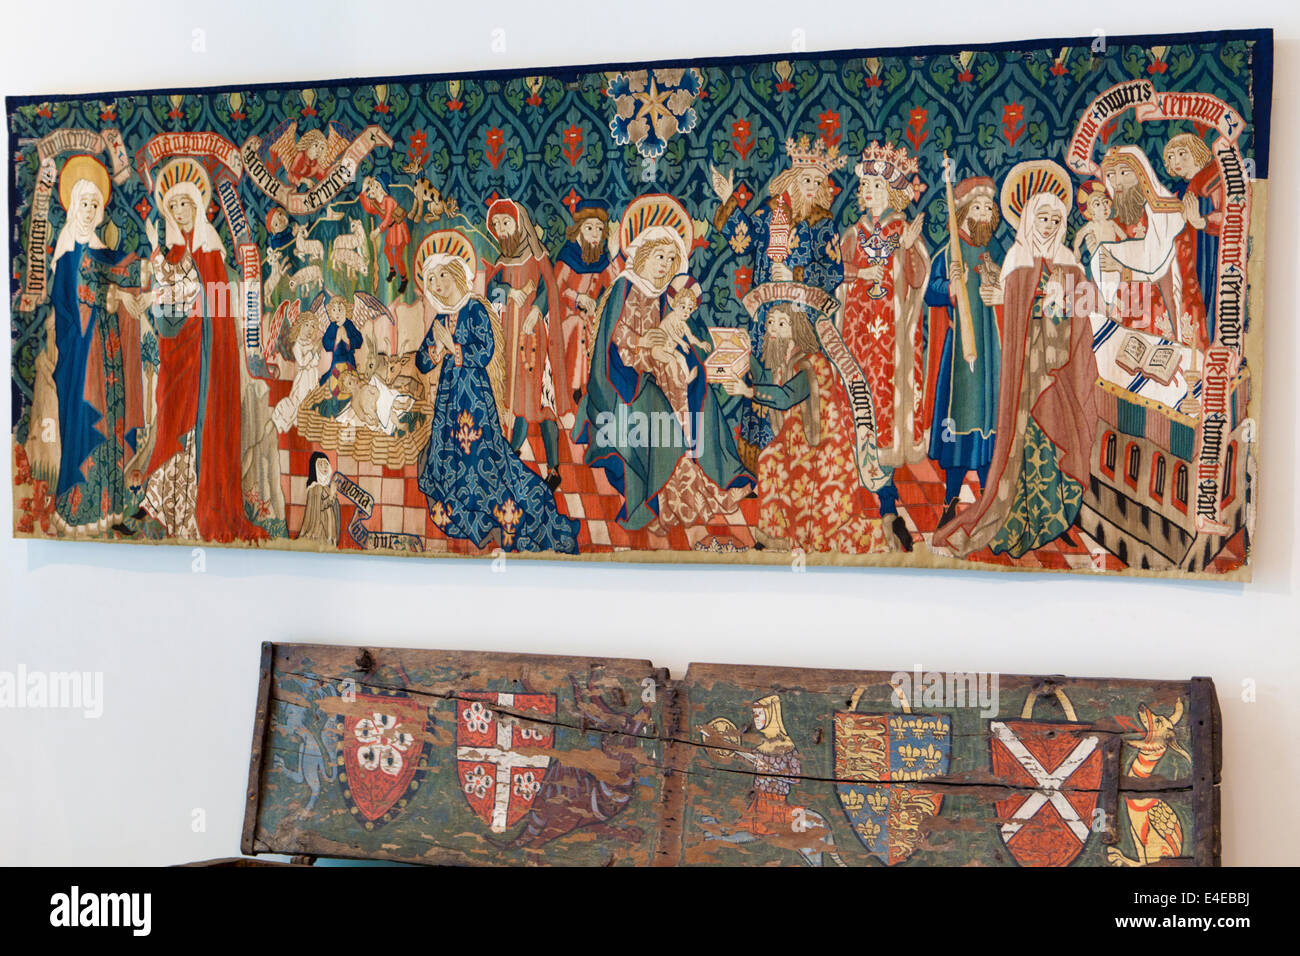 A fifteenth century altar frontal showing 'Scenes from the Life of the Virgin Mary' in the Burrell Collection, - Stock Image